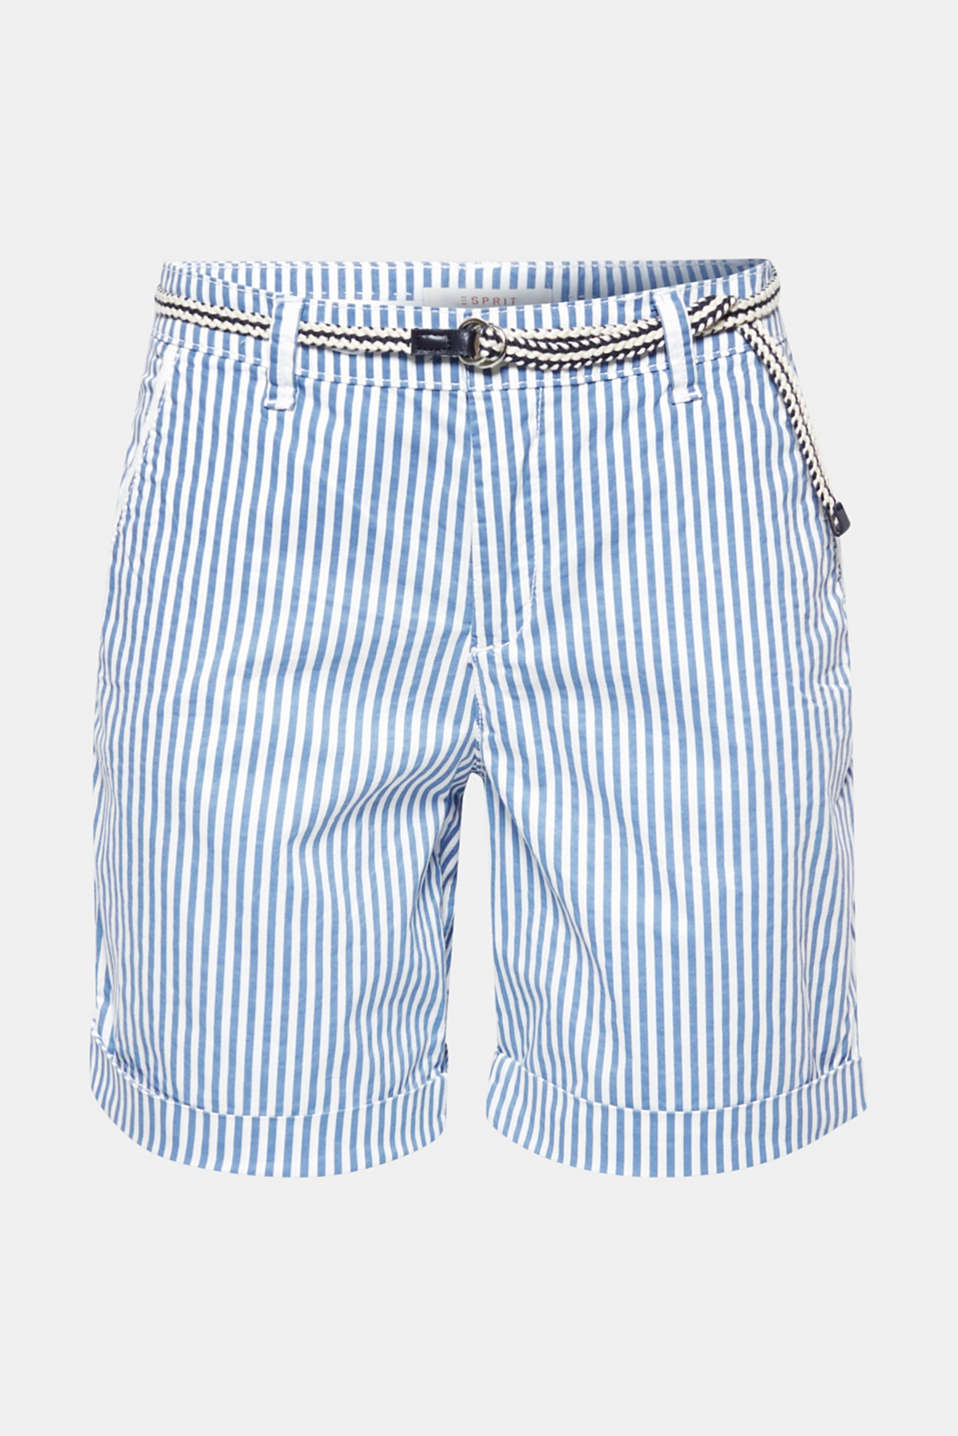 Striped stretch cotton shorts with a belt, BLUE, detail image number 6